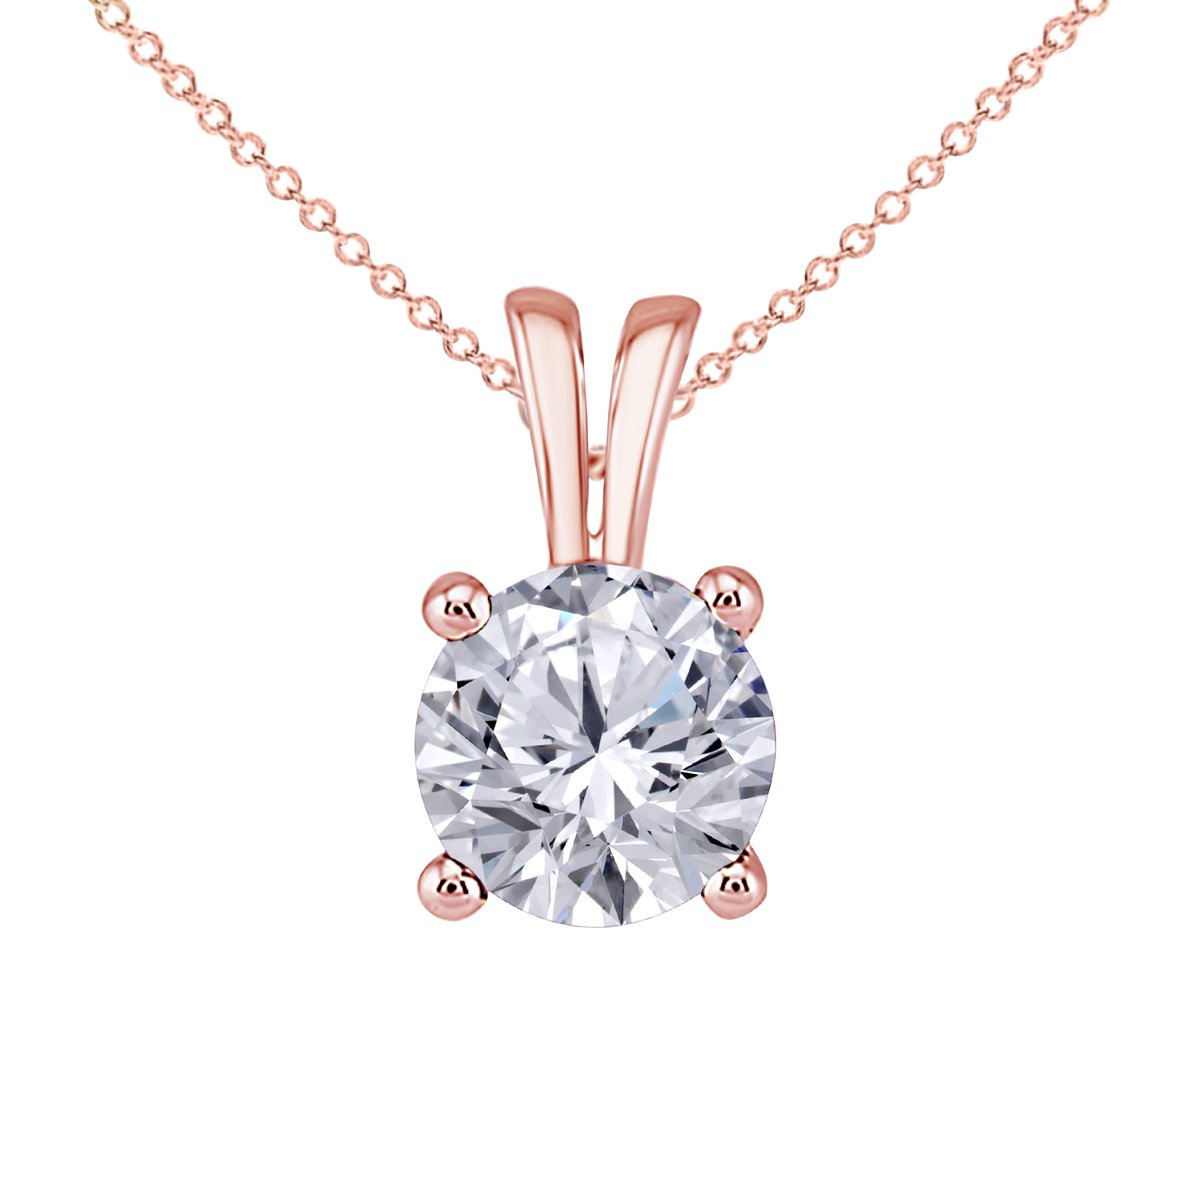 16+2 Ext. Hot Classic Look 1.00 Ct Round Cut Clear Cubic Zirconia CZ Solitaire Pendant Necklace for Women 18 with 14K Rose Gold Over